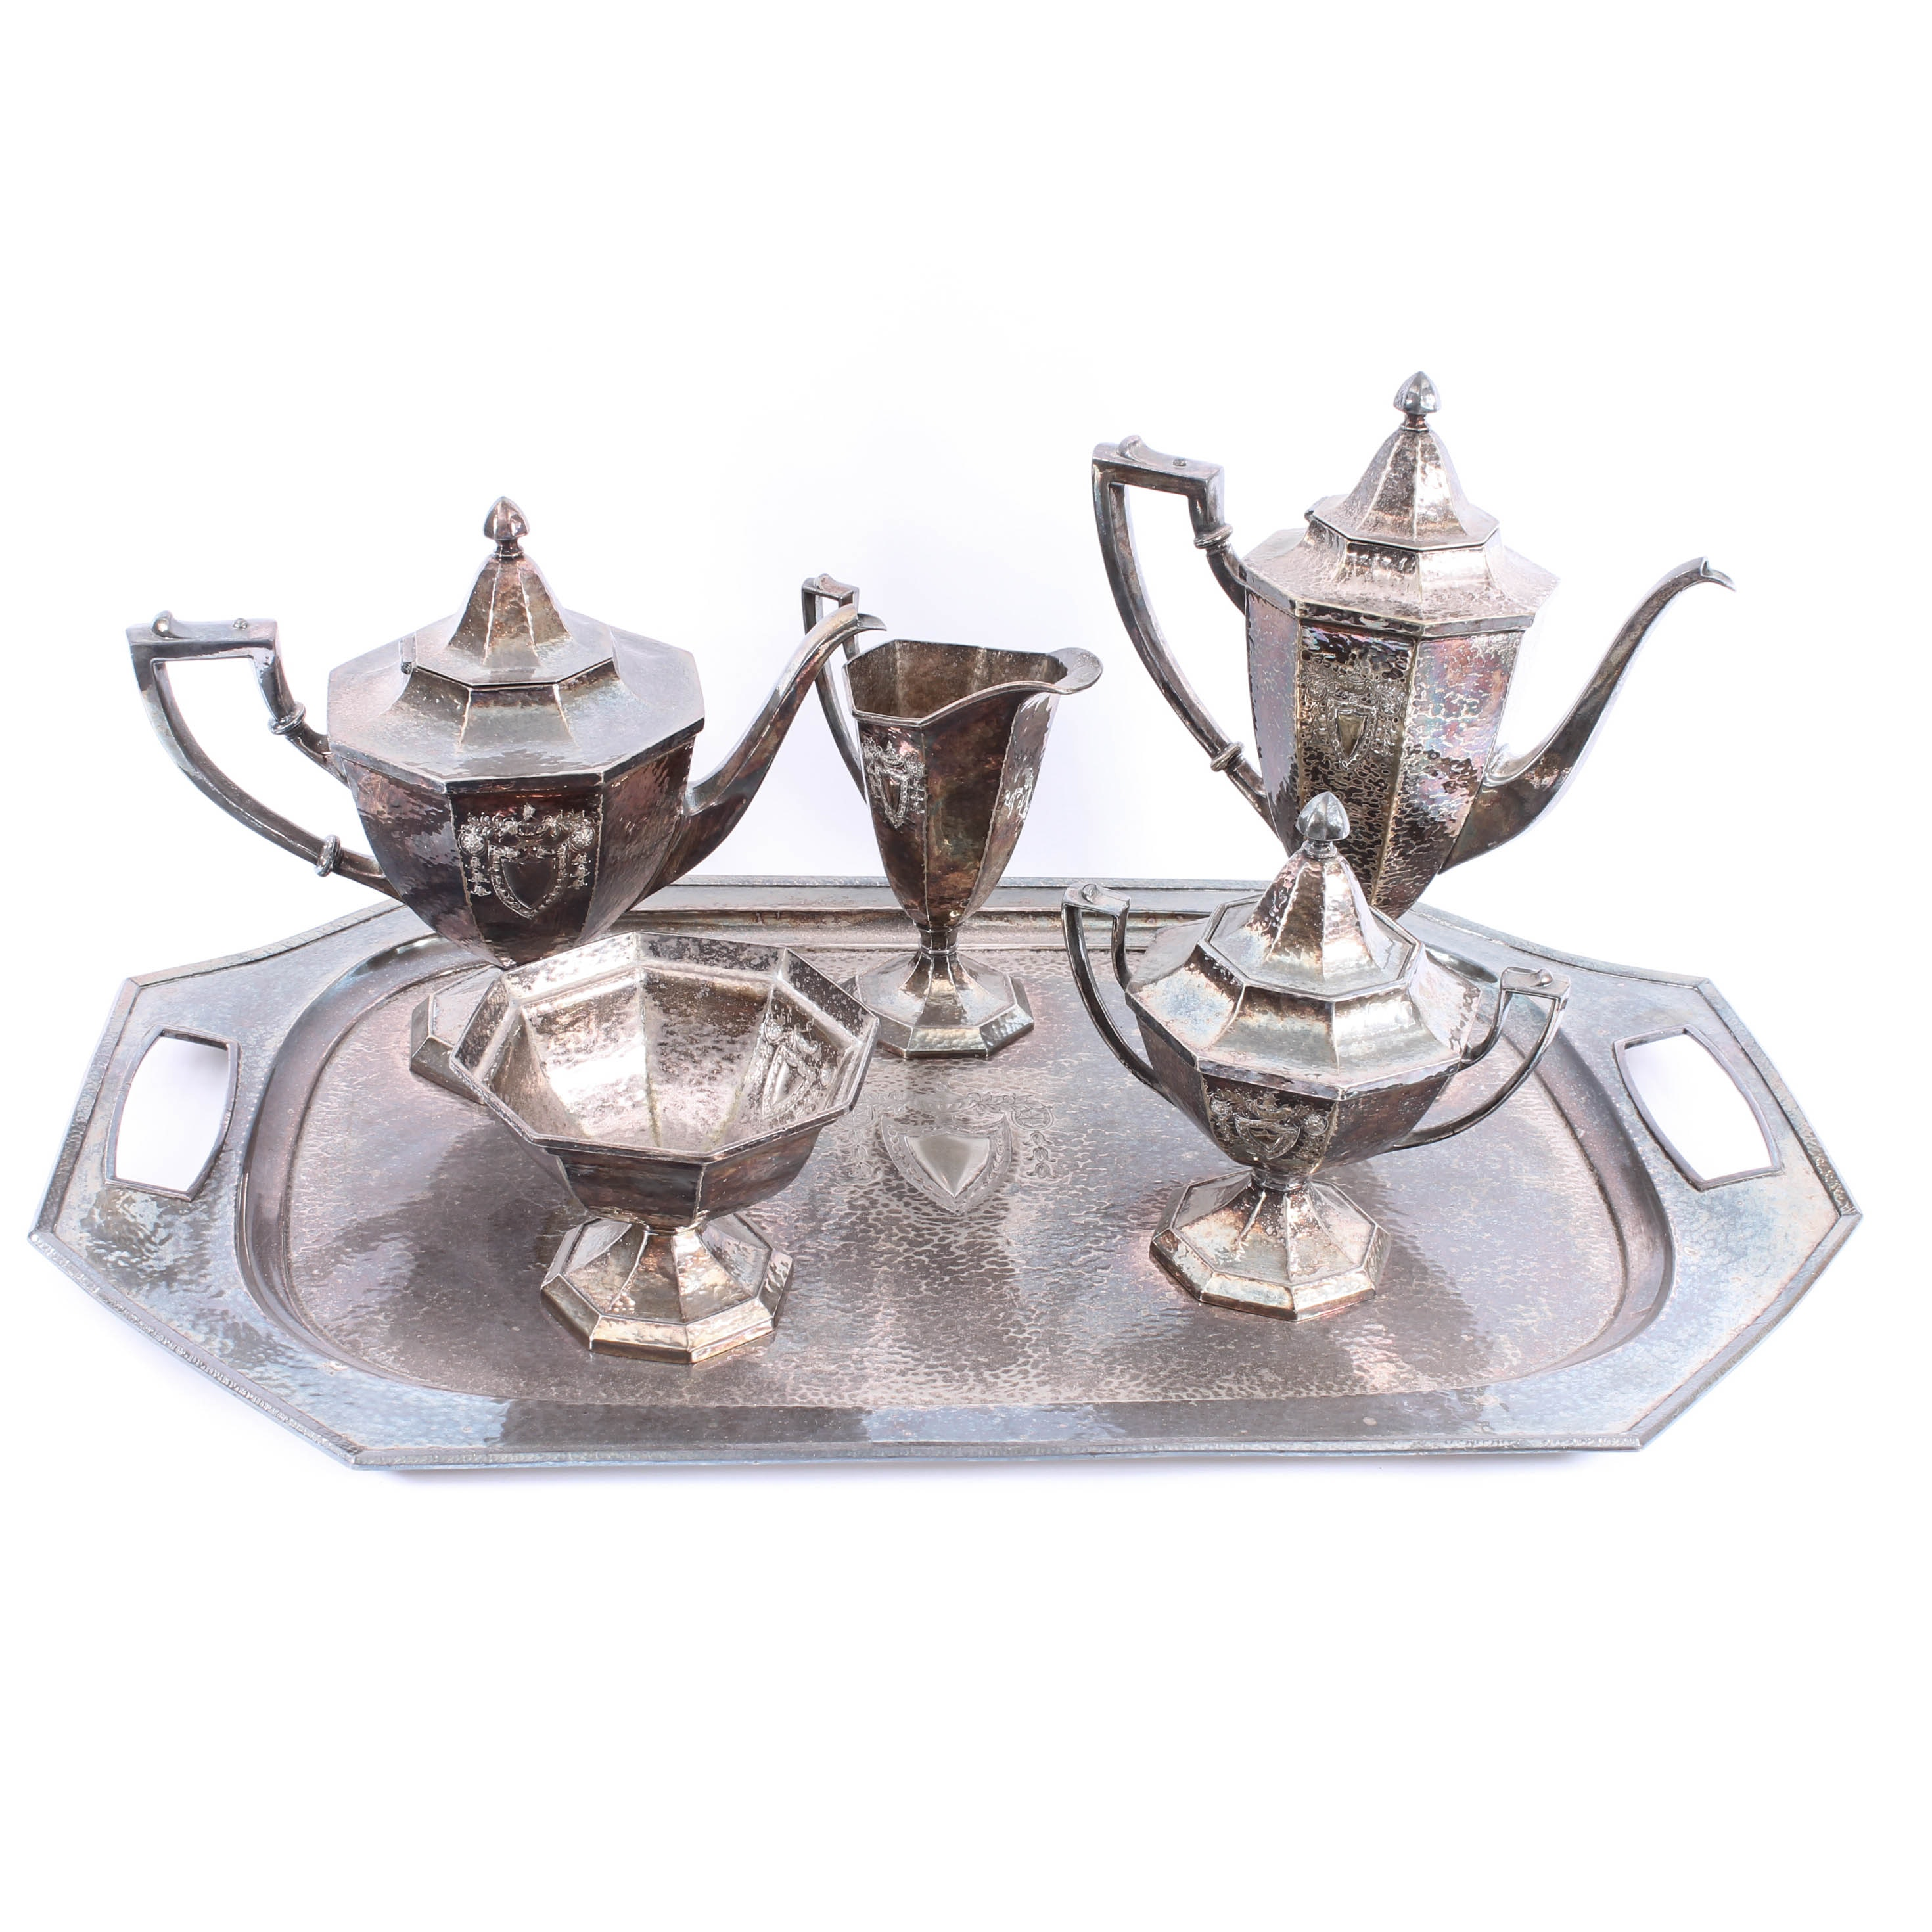 Roger Bros Silver Plated Service Set